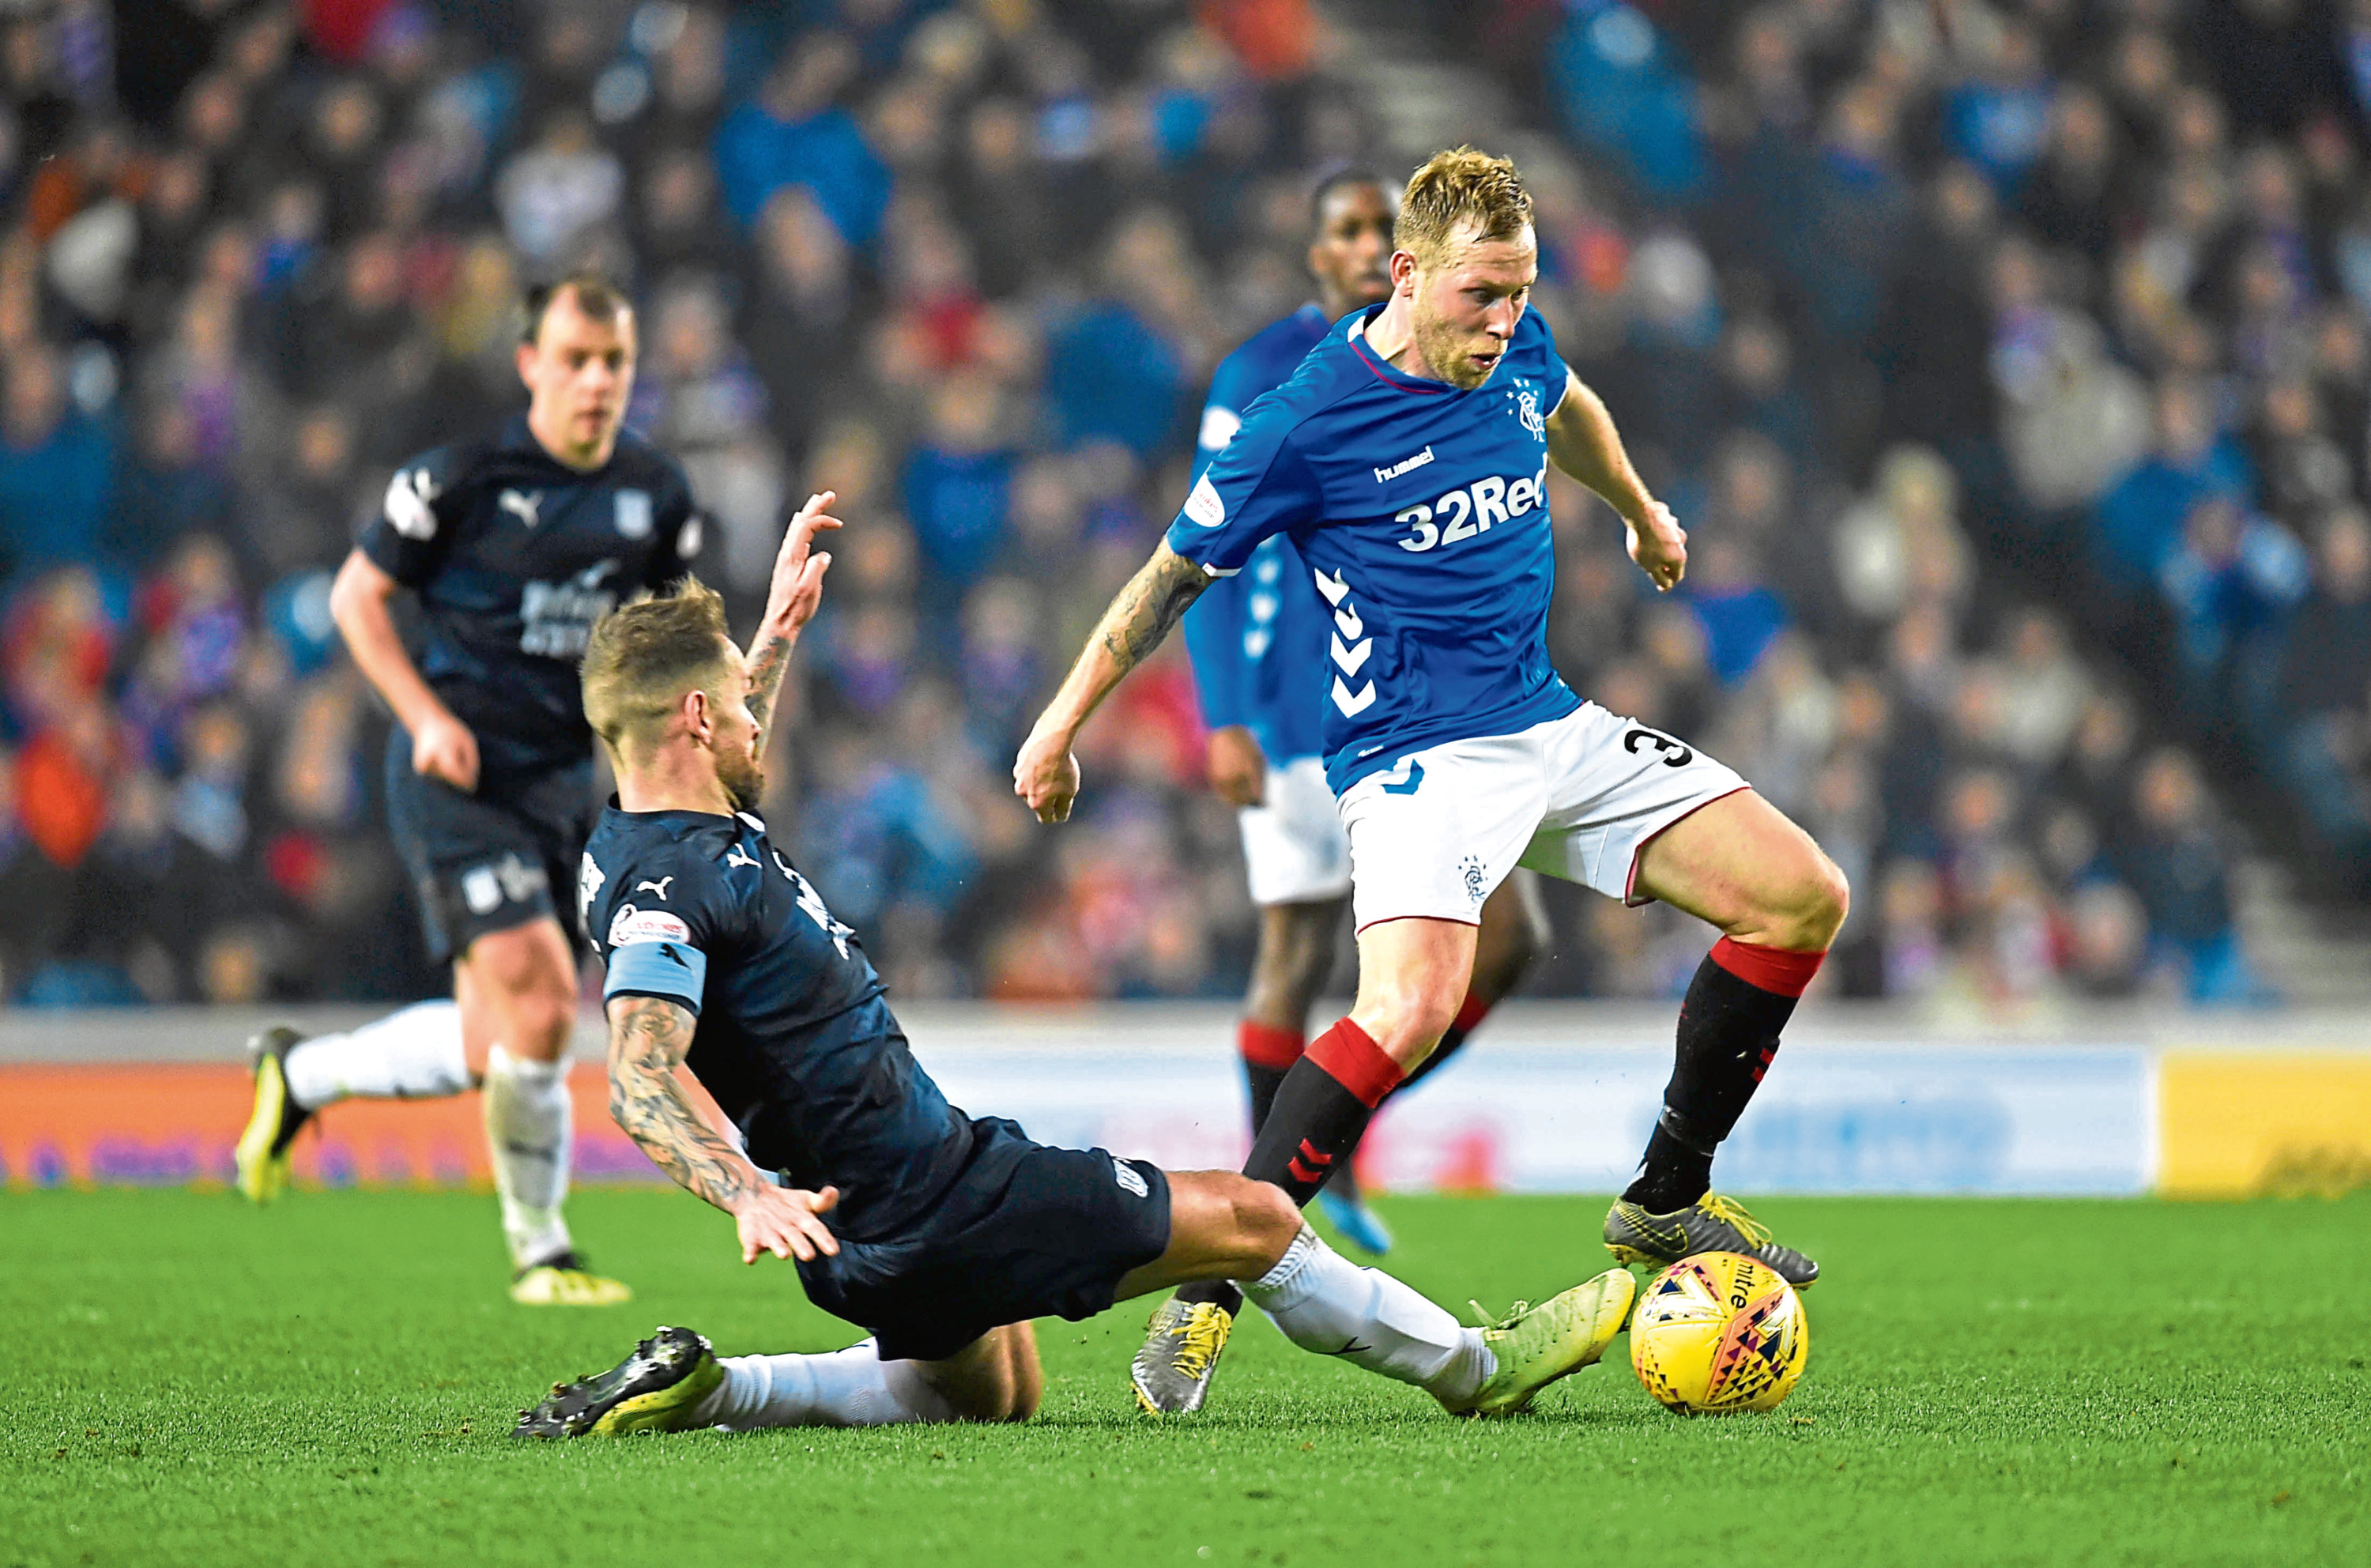 Rangers' Scott Arfield (right) dodges a challenge from Dundee's Martin Woods